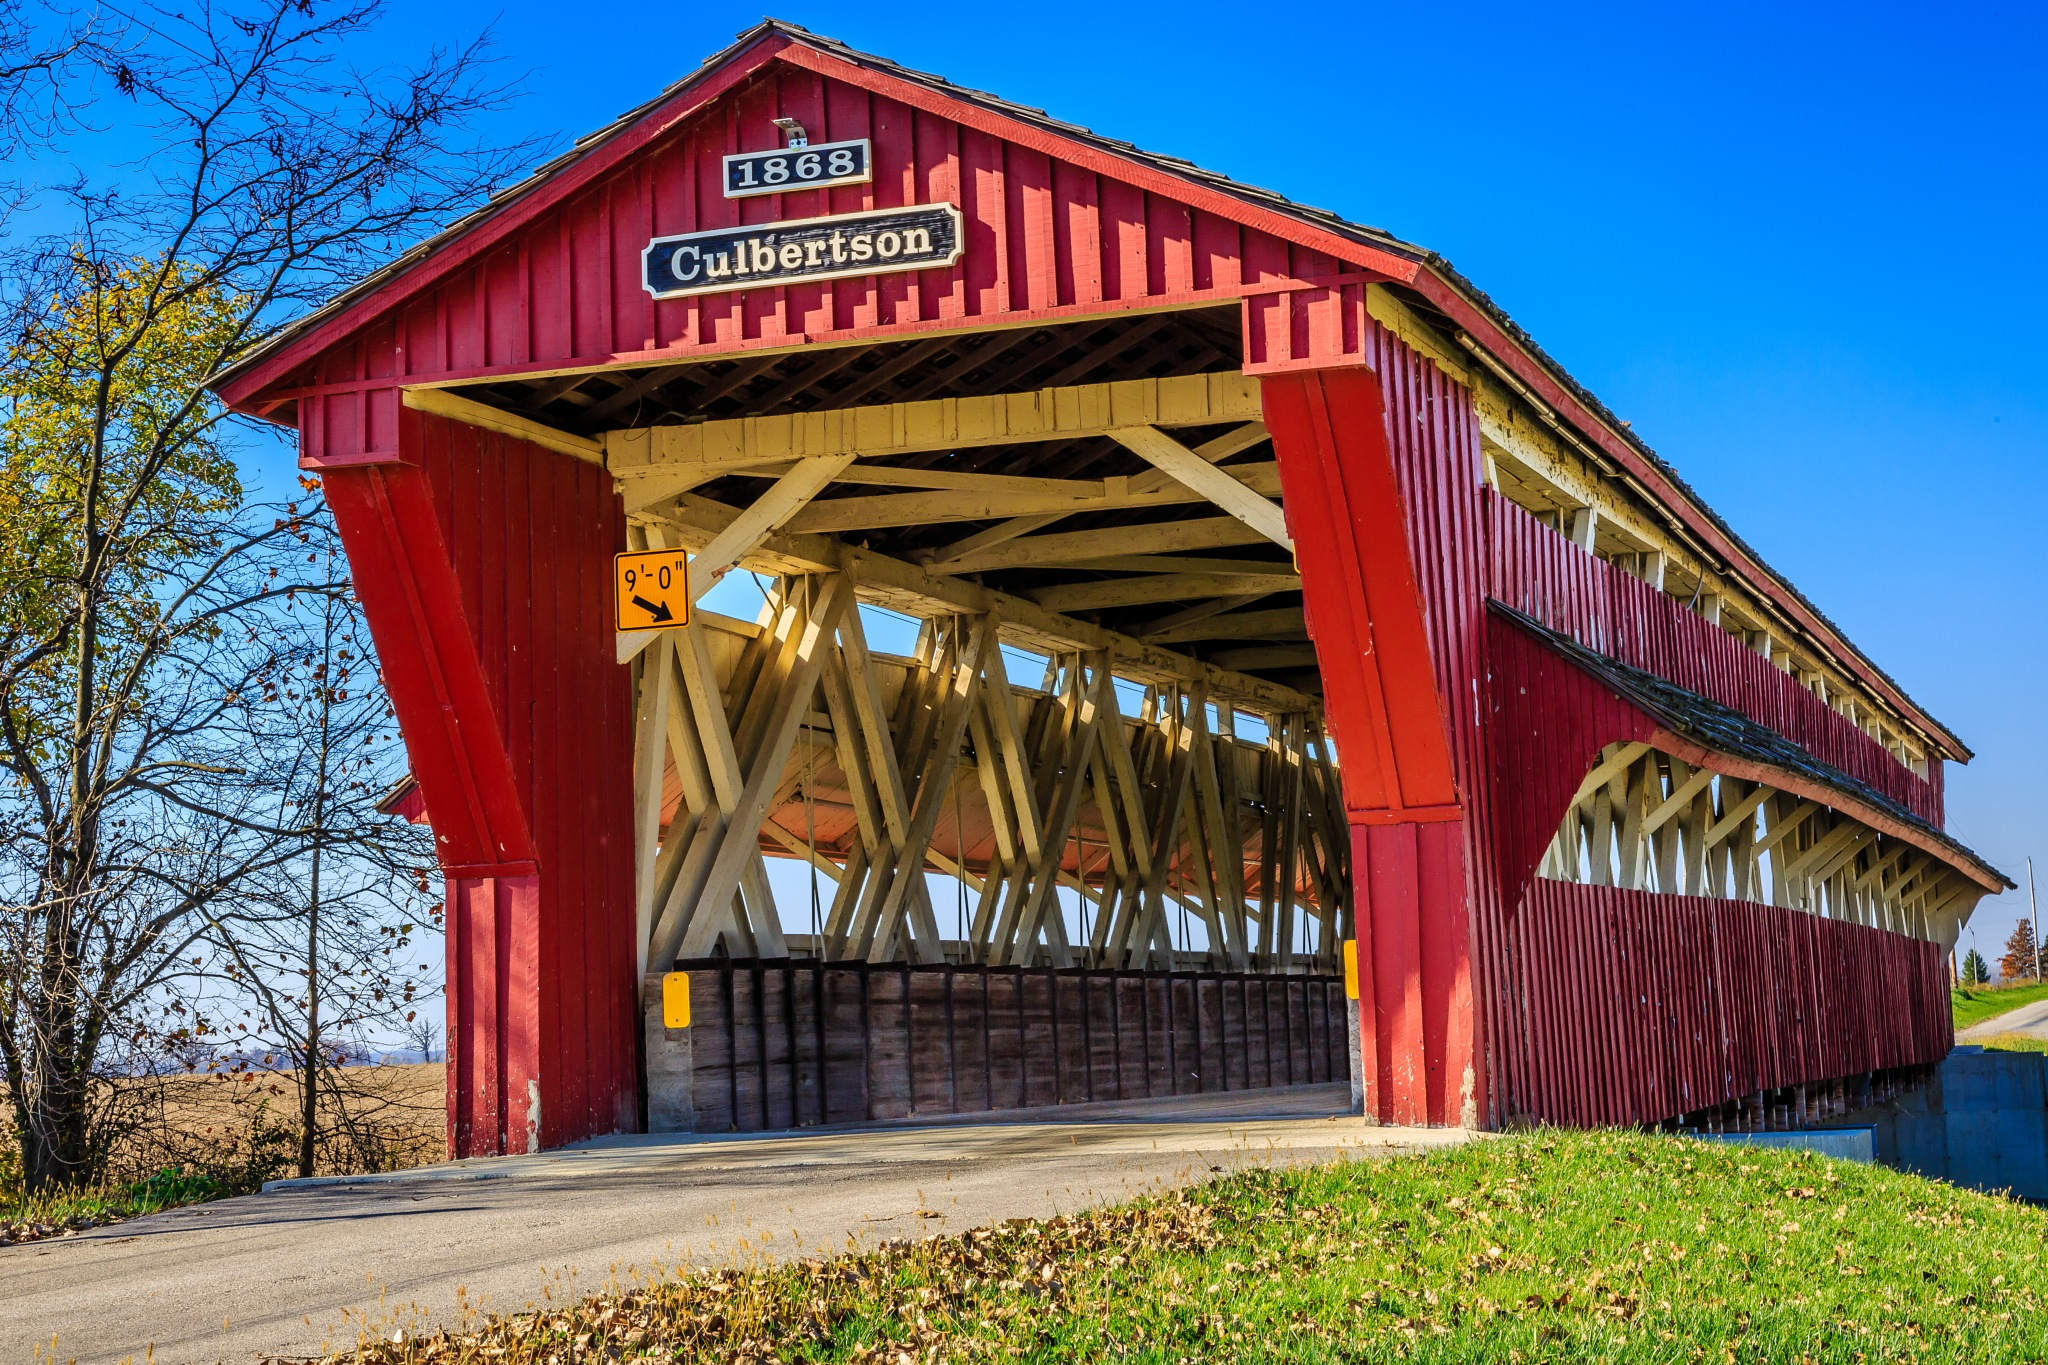 Covered bridge in Union county by DennisKreais